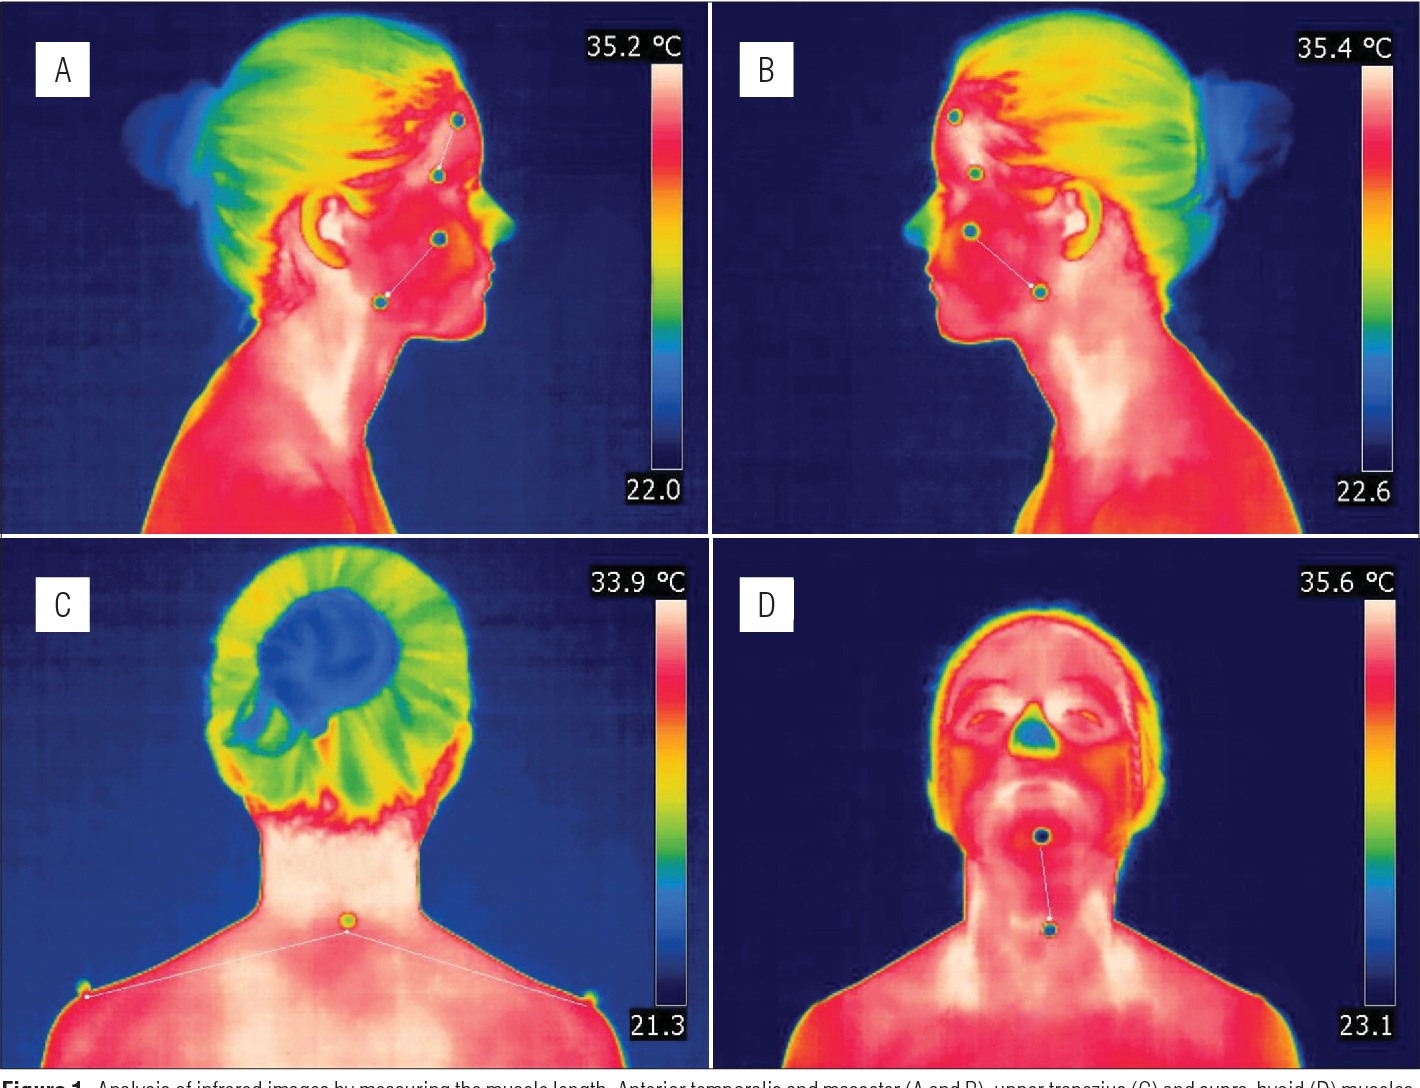 Intra And Inter Rater Reliability Of Infrared Image Analysis Of